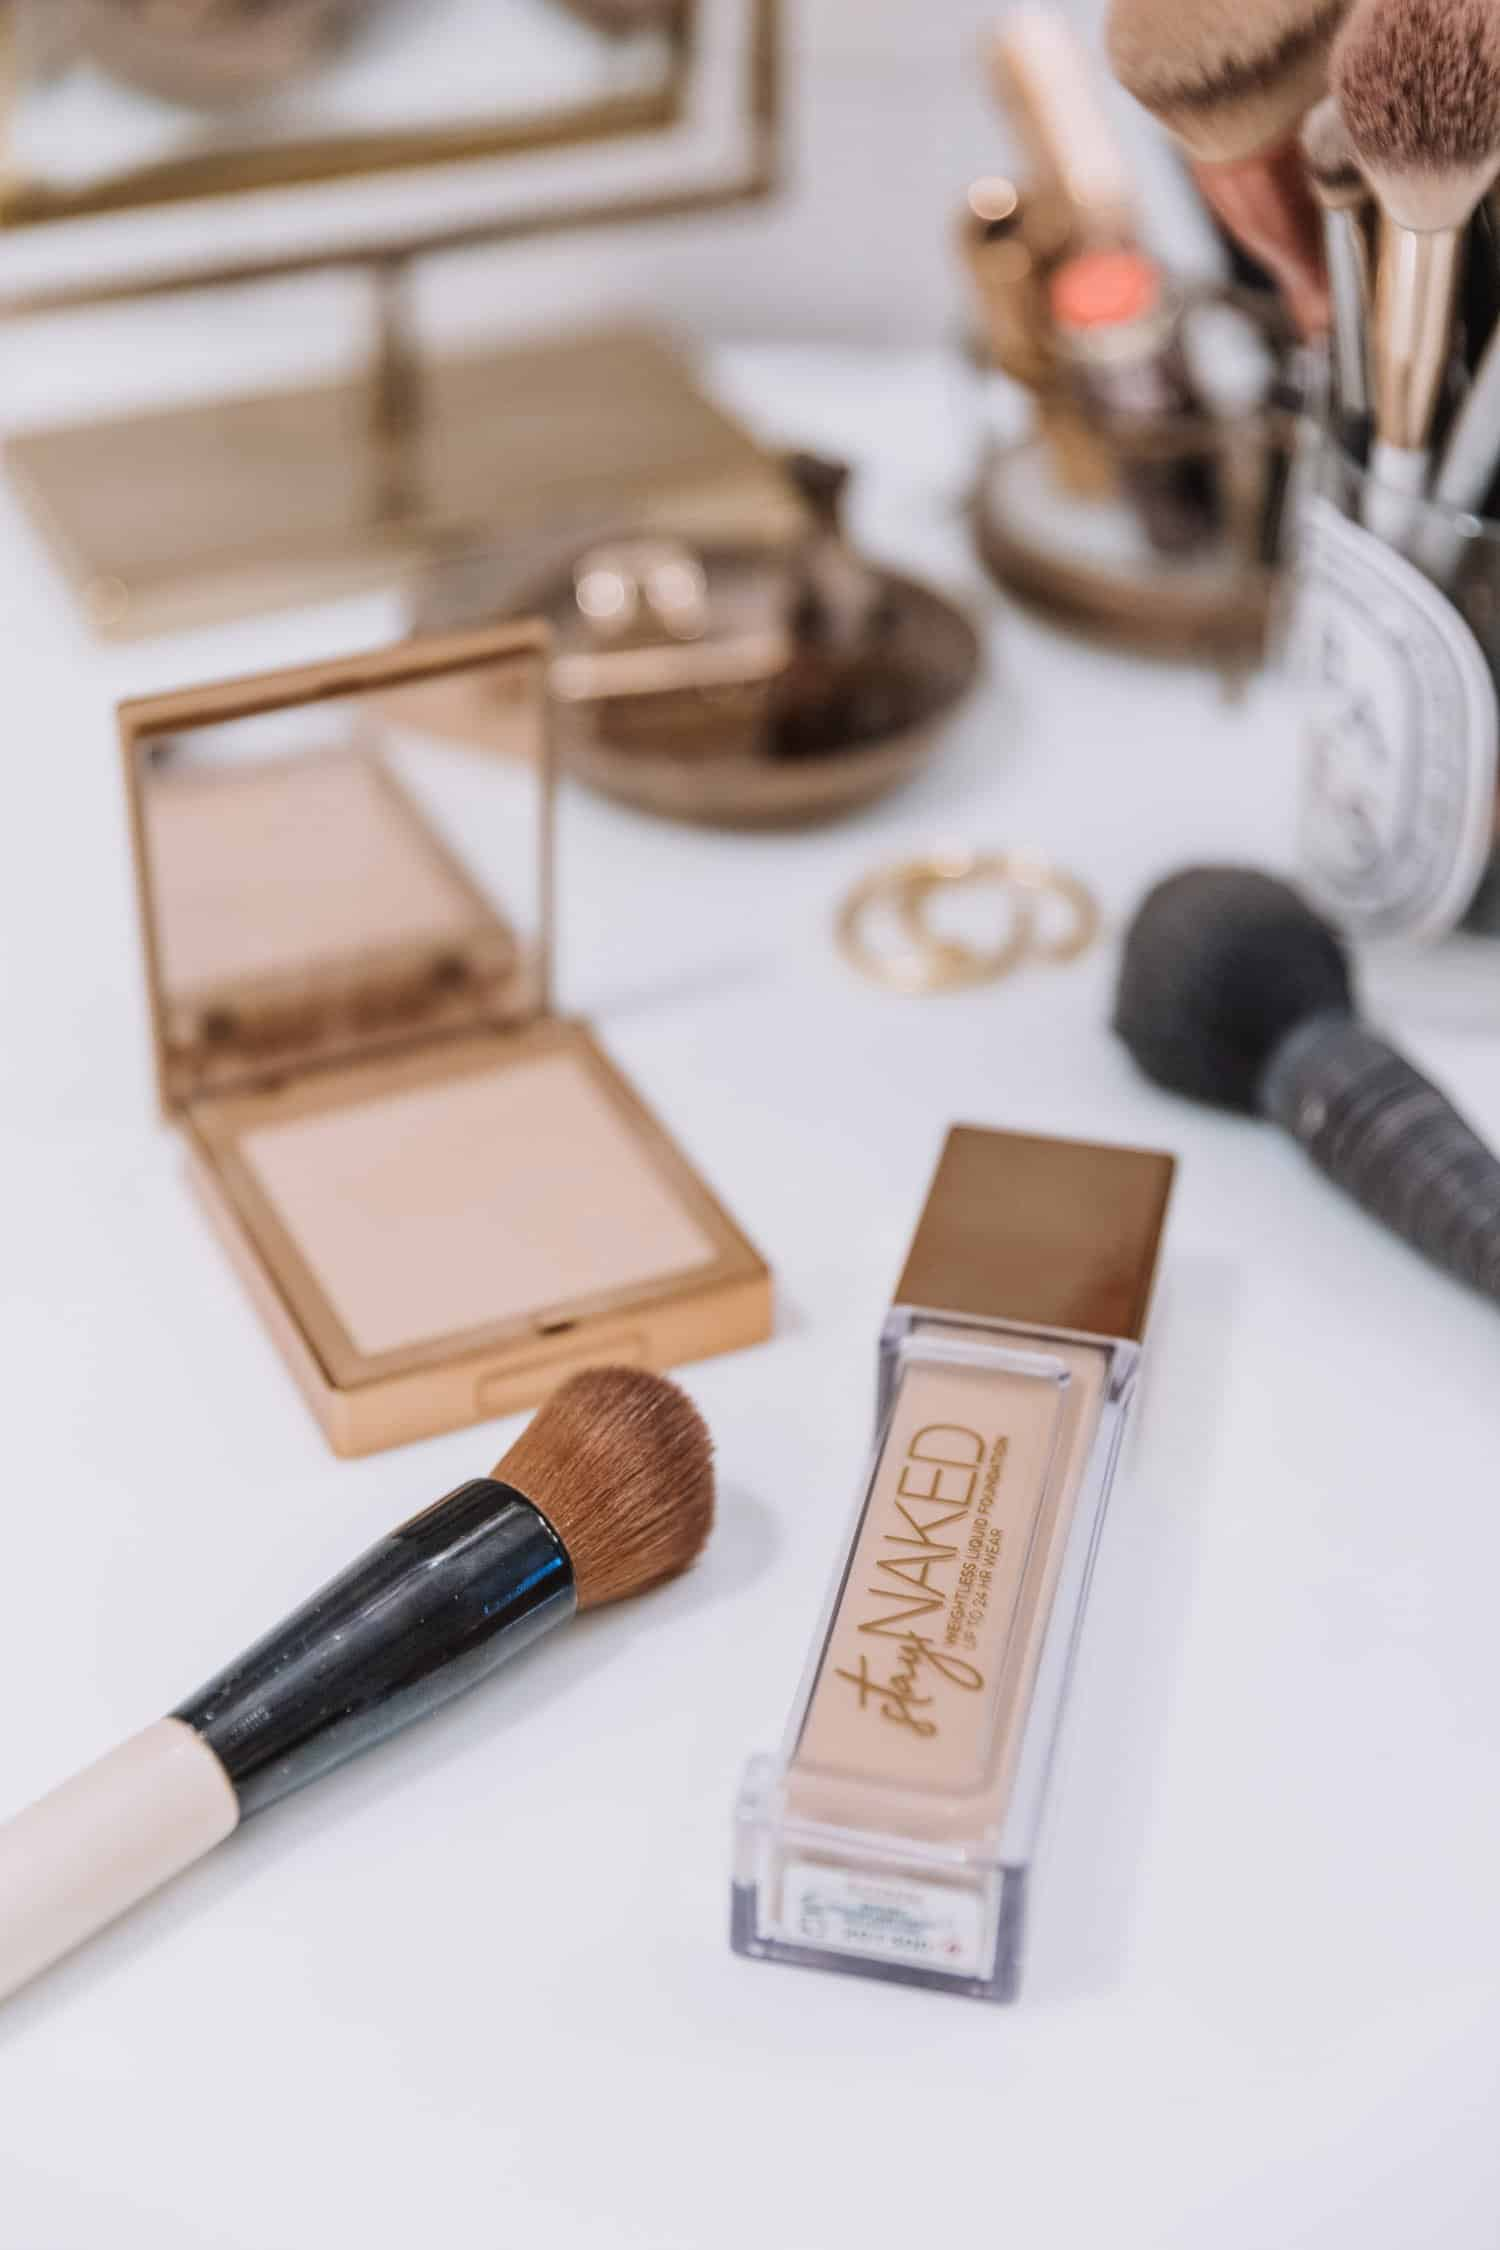 Urban Decay Stay Naked Foundation Review